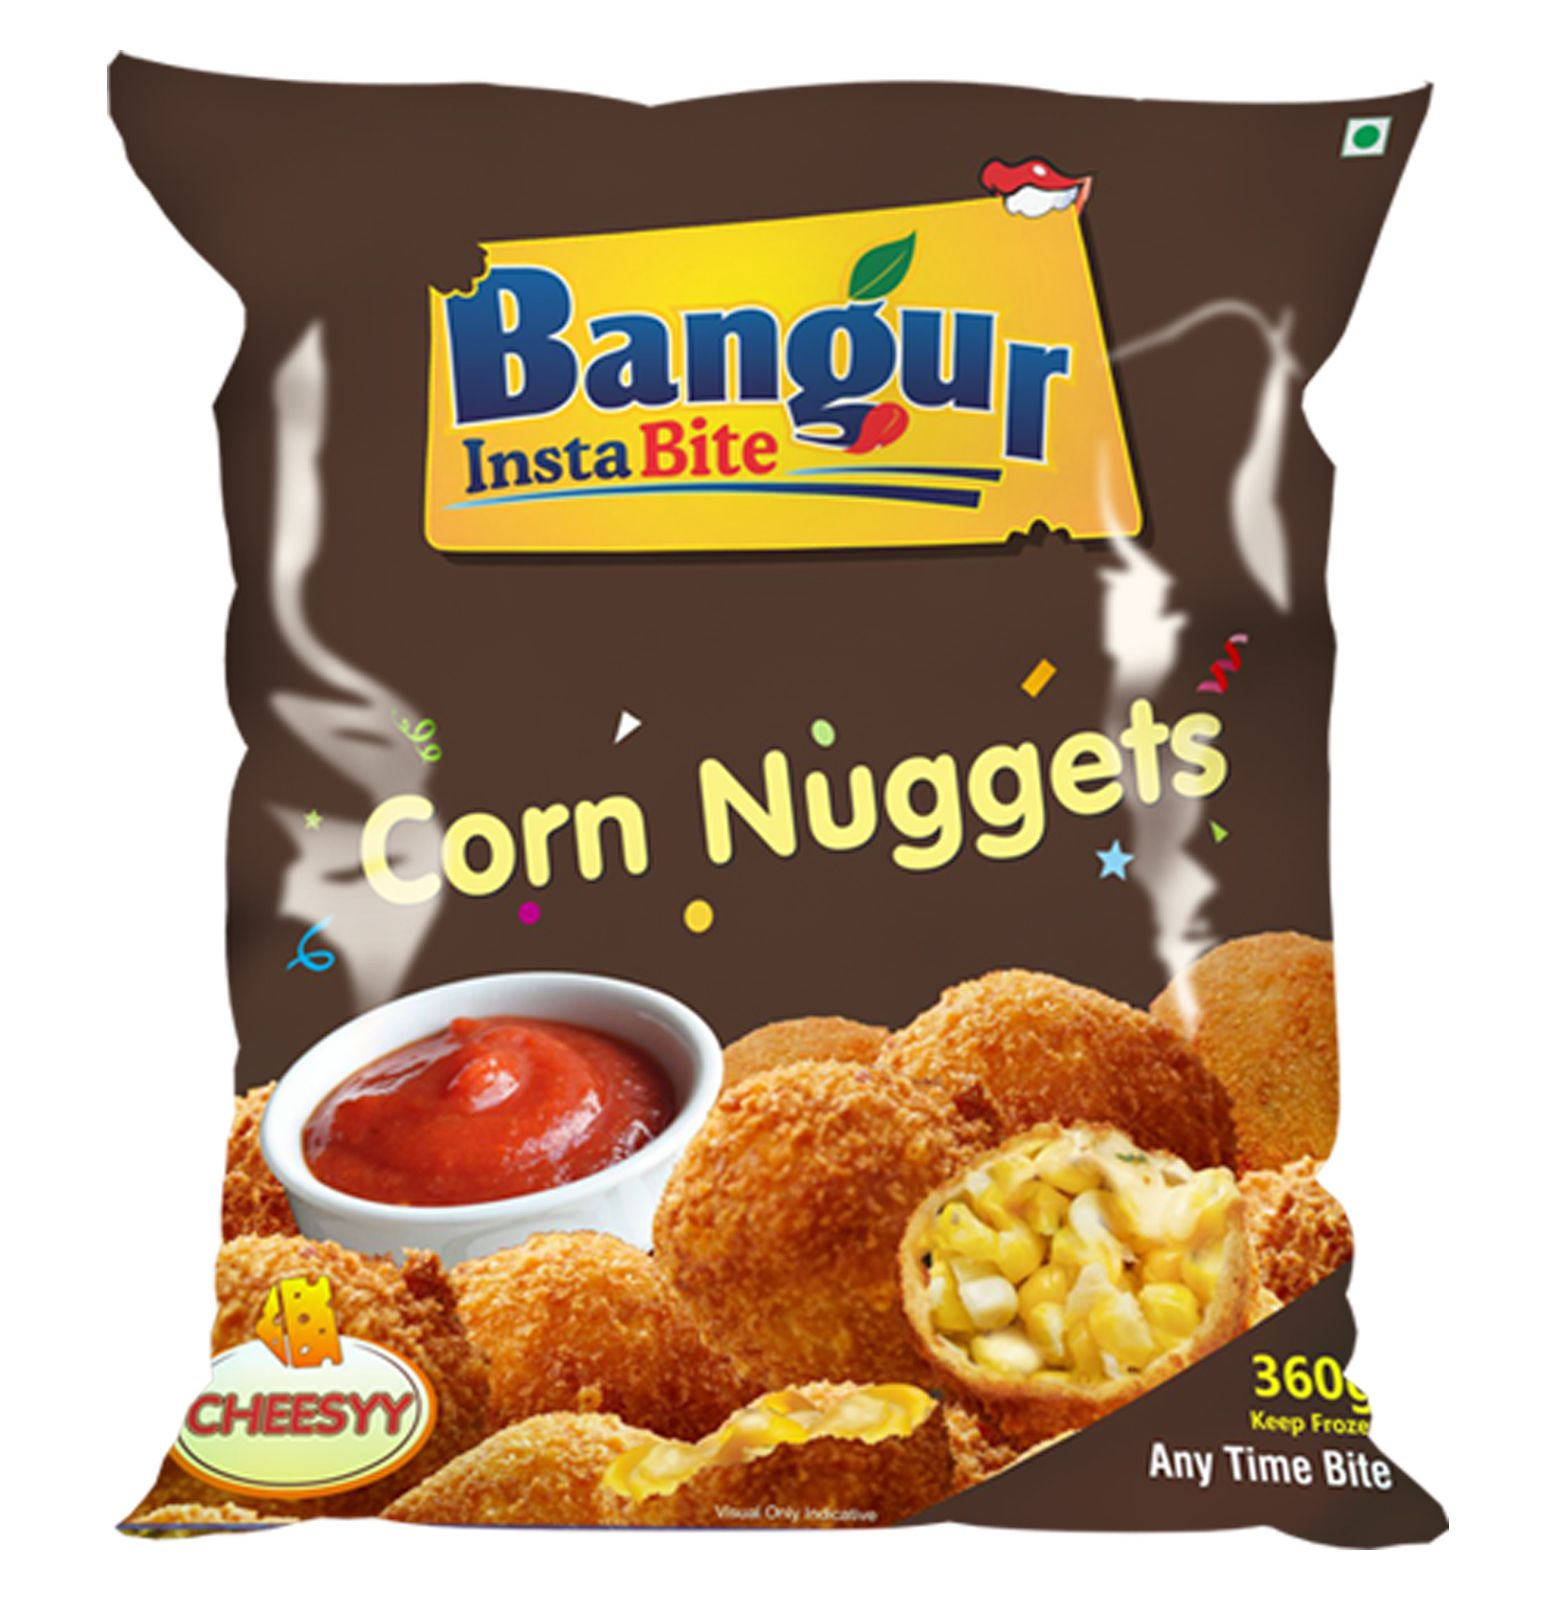 Cheese corn nuggets delicious indian recipe served as snacks find cheese corn nuggets delicious indian recipe served as snacks find it on bhanufarms forumfinder Image collections